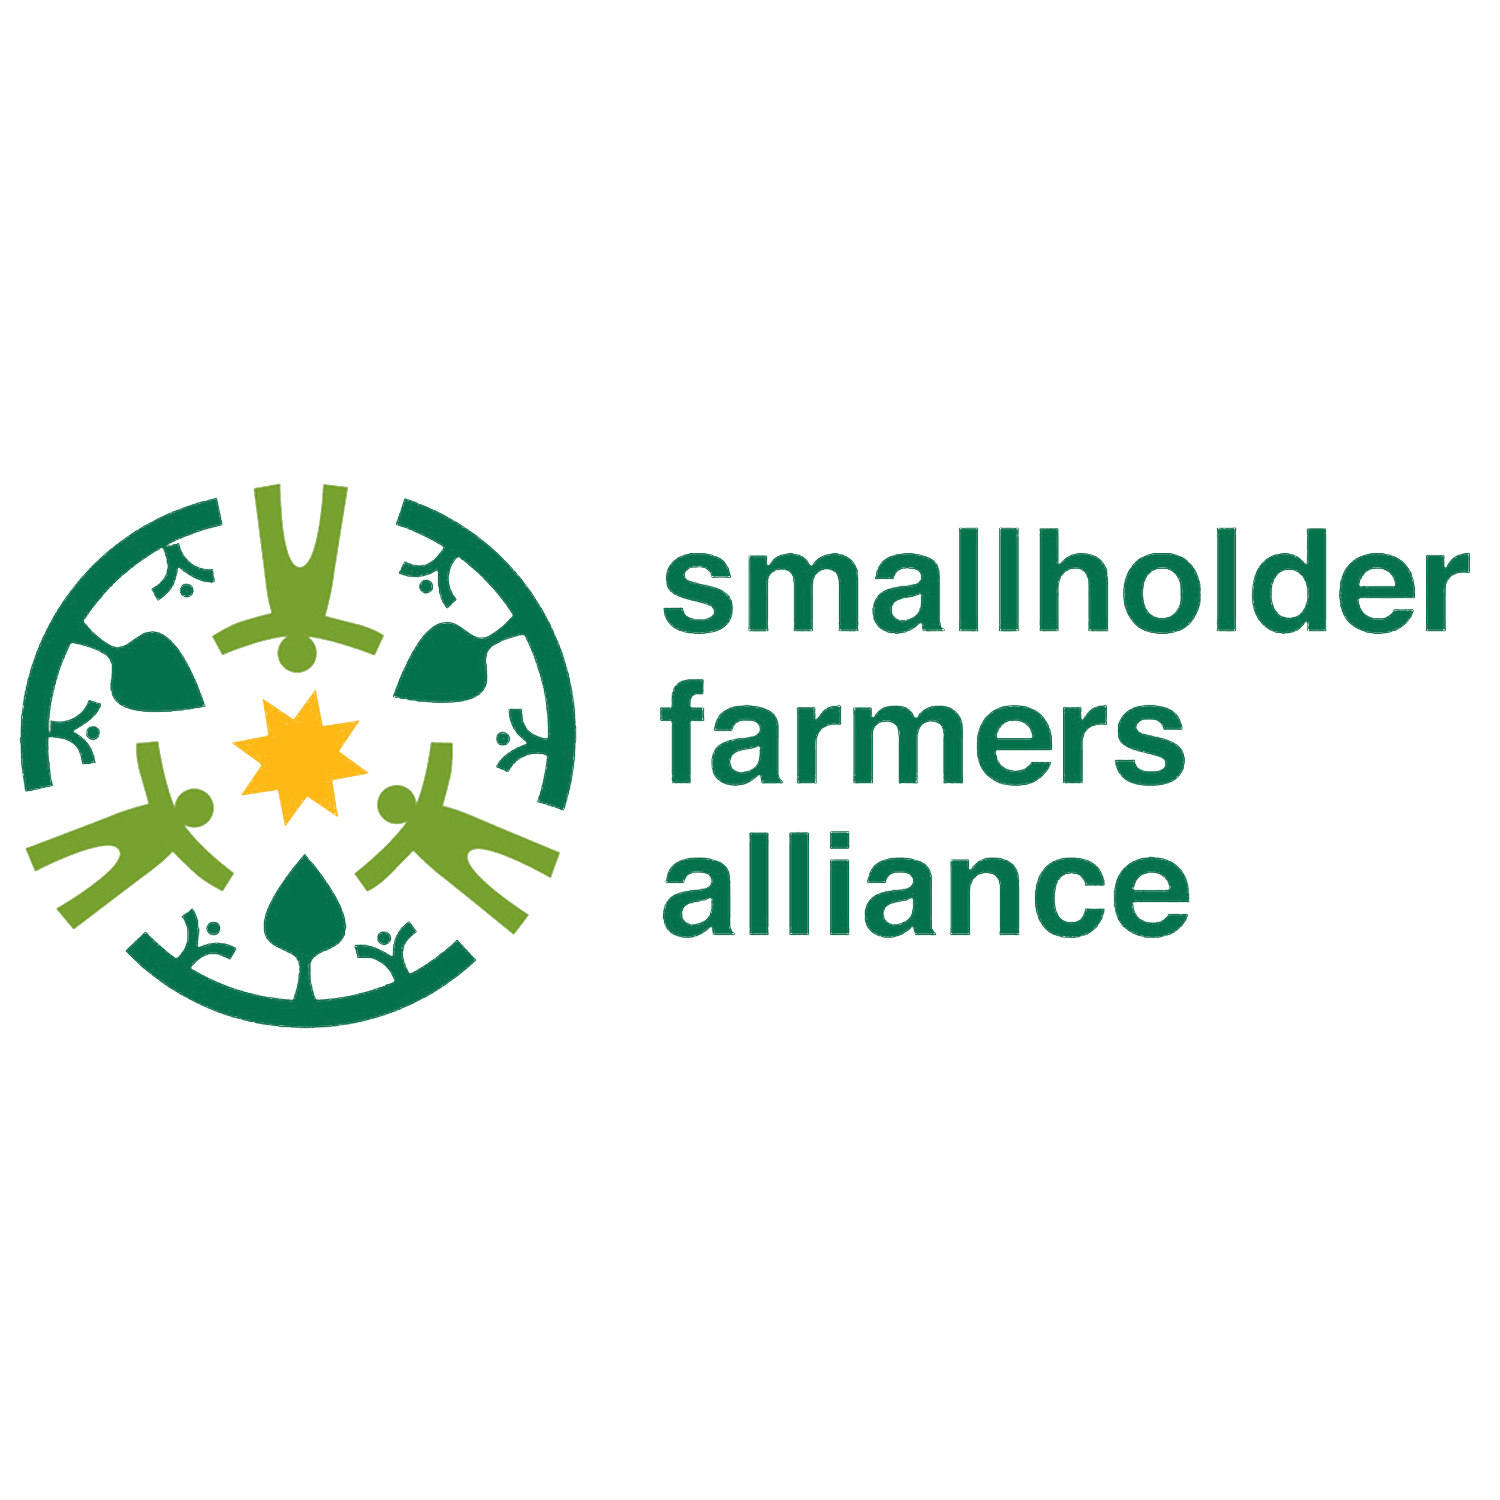 SMALLHOLDER-FARMERS-ALLIANCE.png